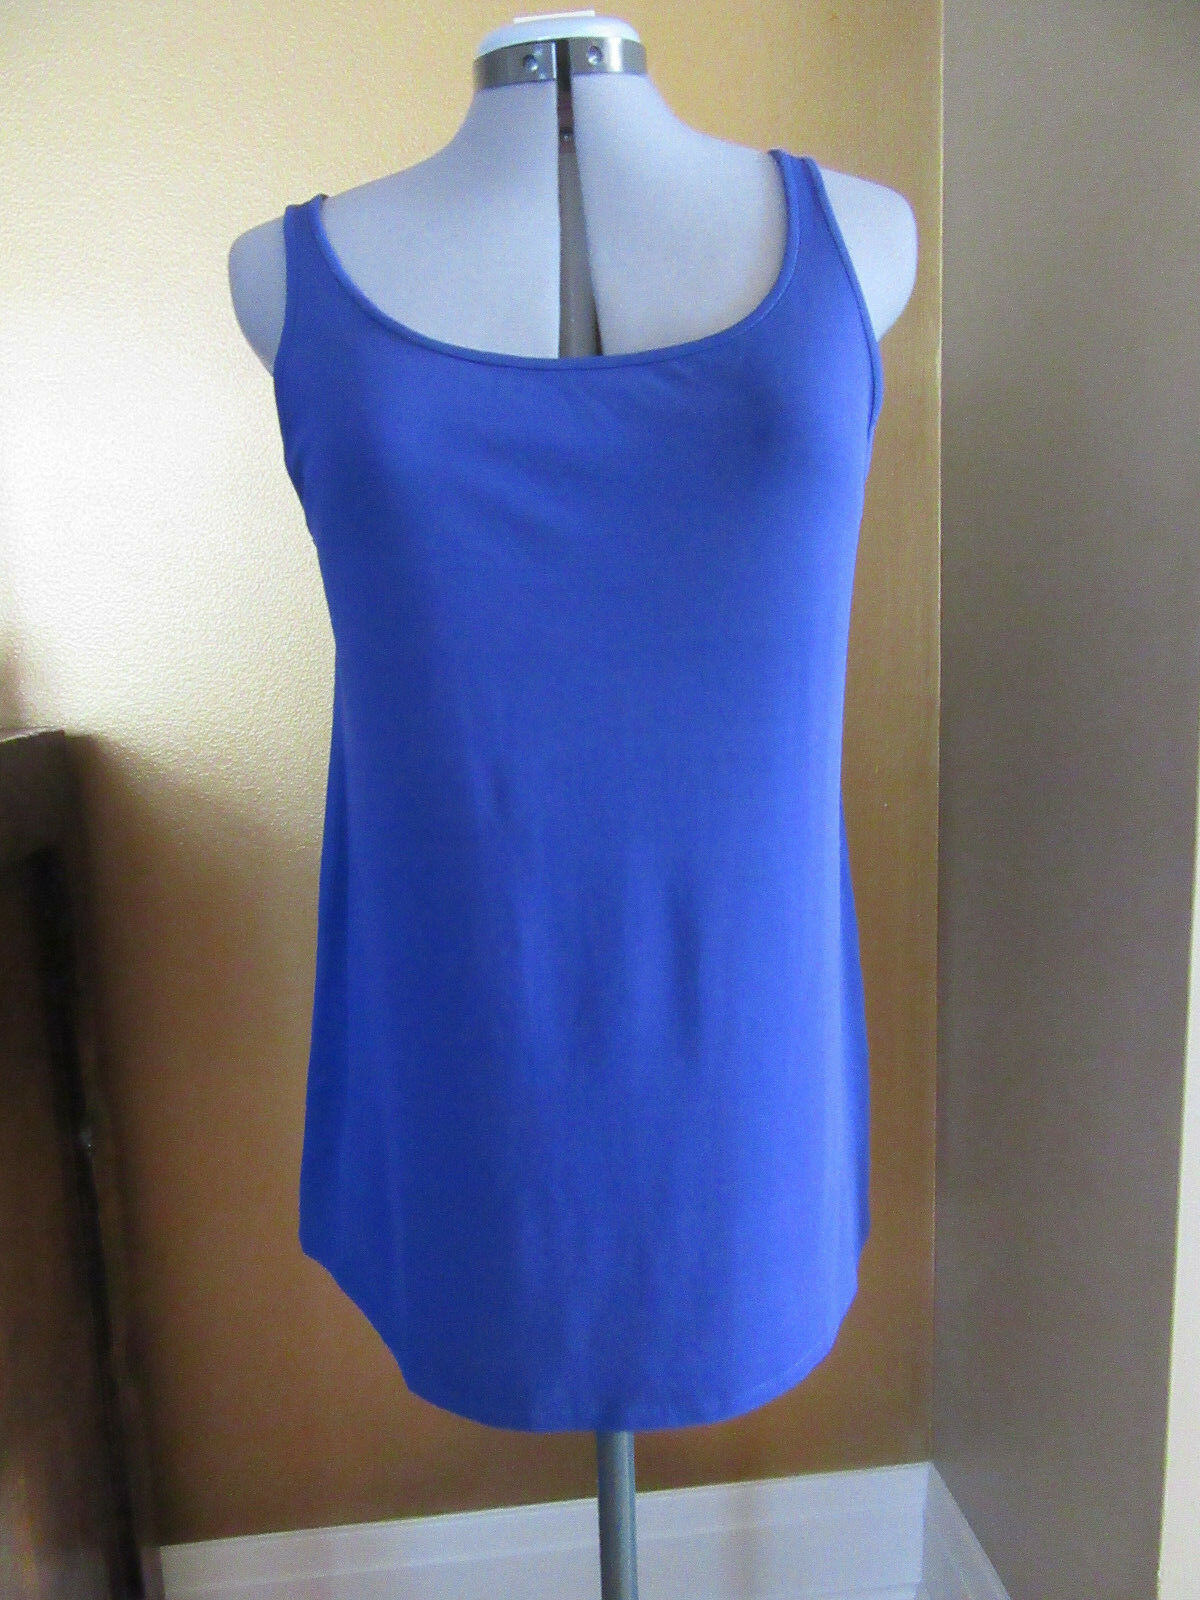 NWT Eileen Fisher Silk Jersey Scoop Neck in Saphire Größe Petite Medium